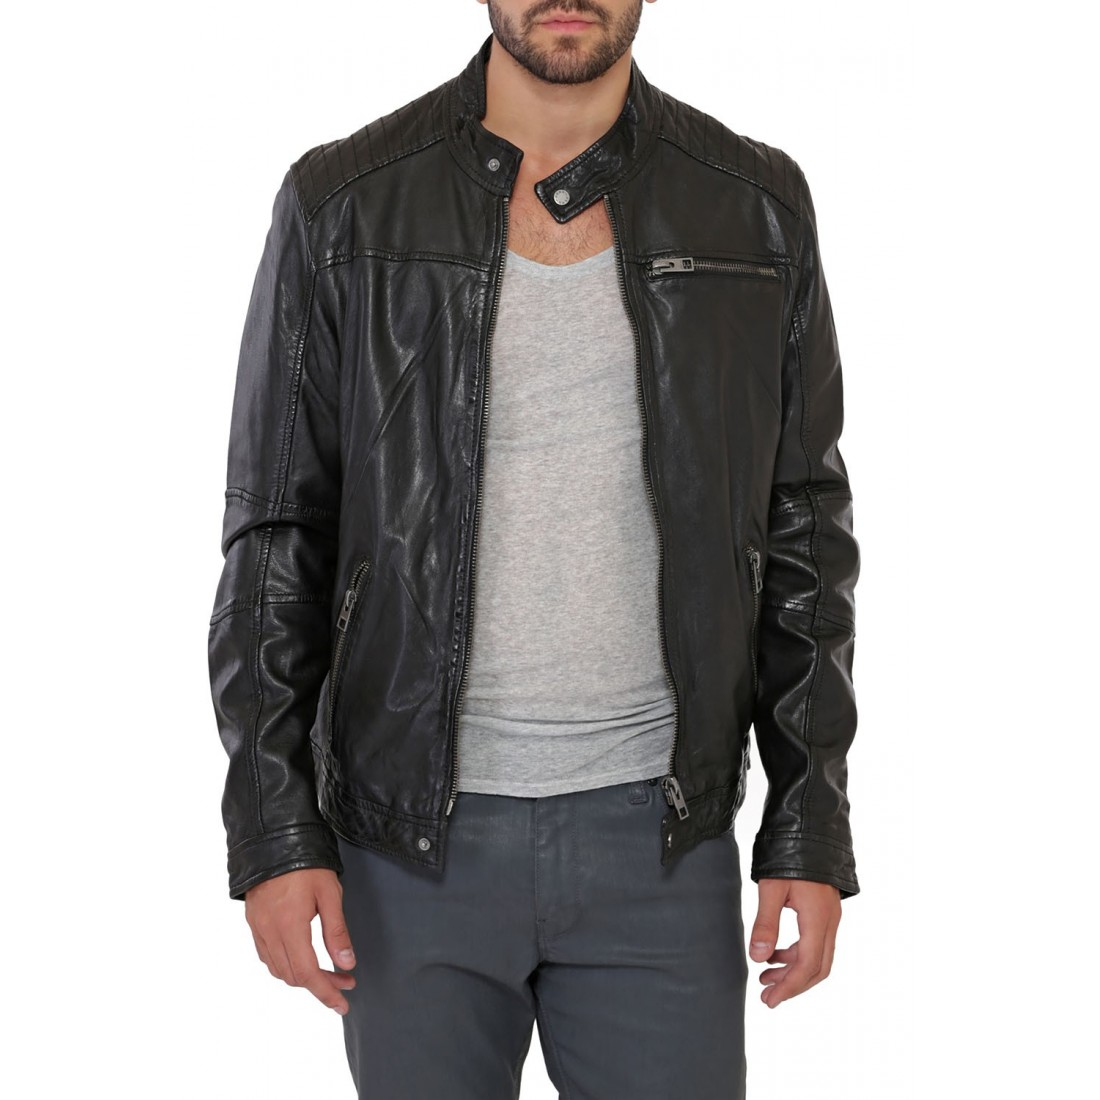 pin blouson noir on pinterest